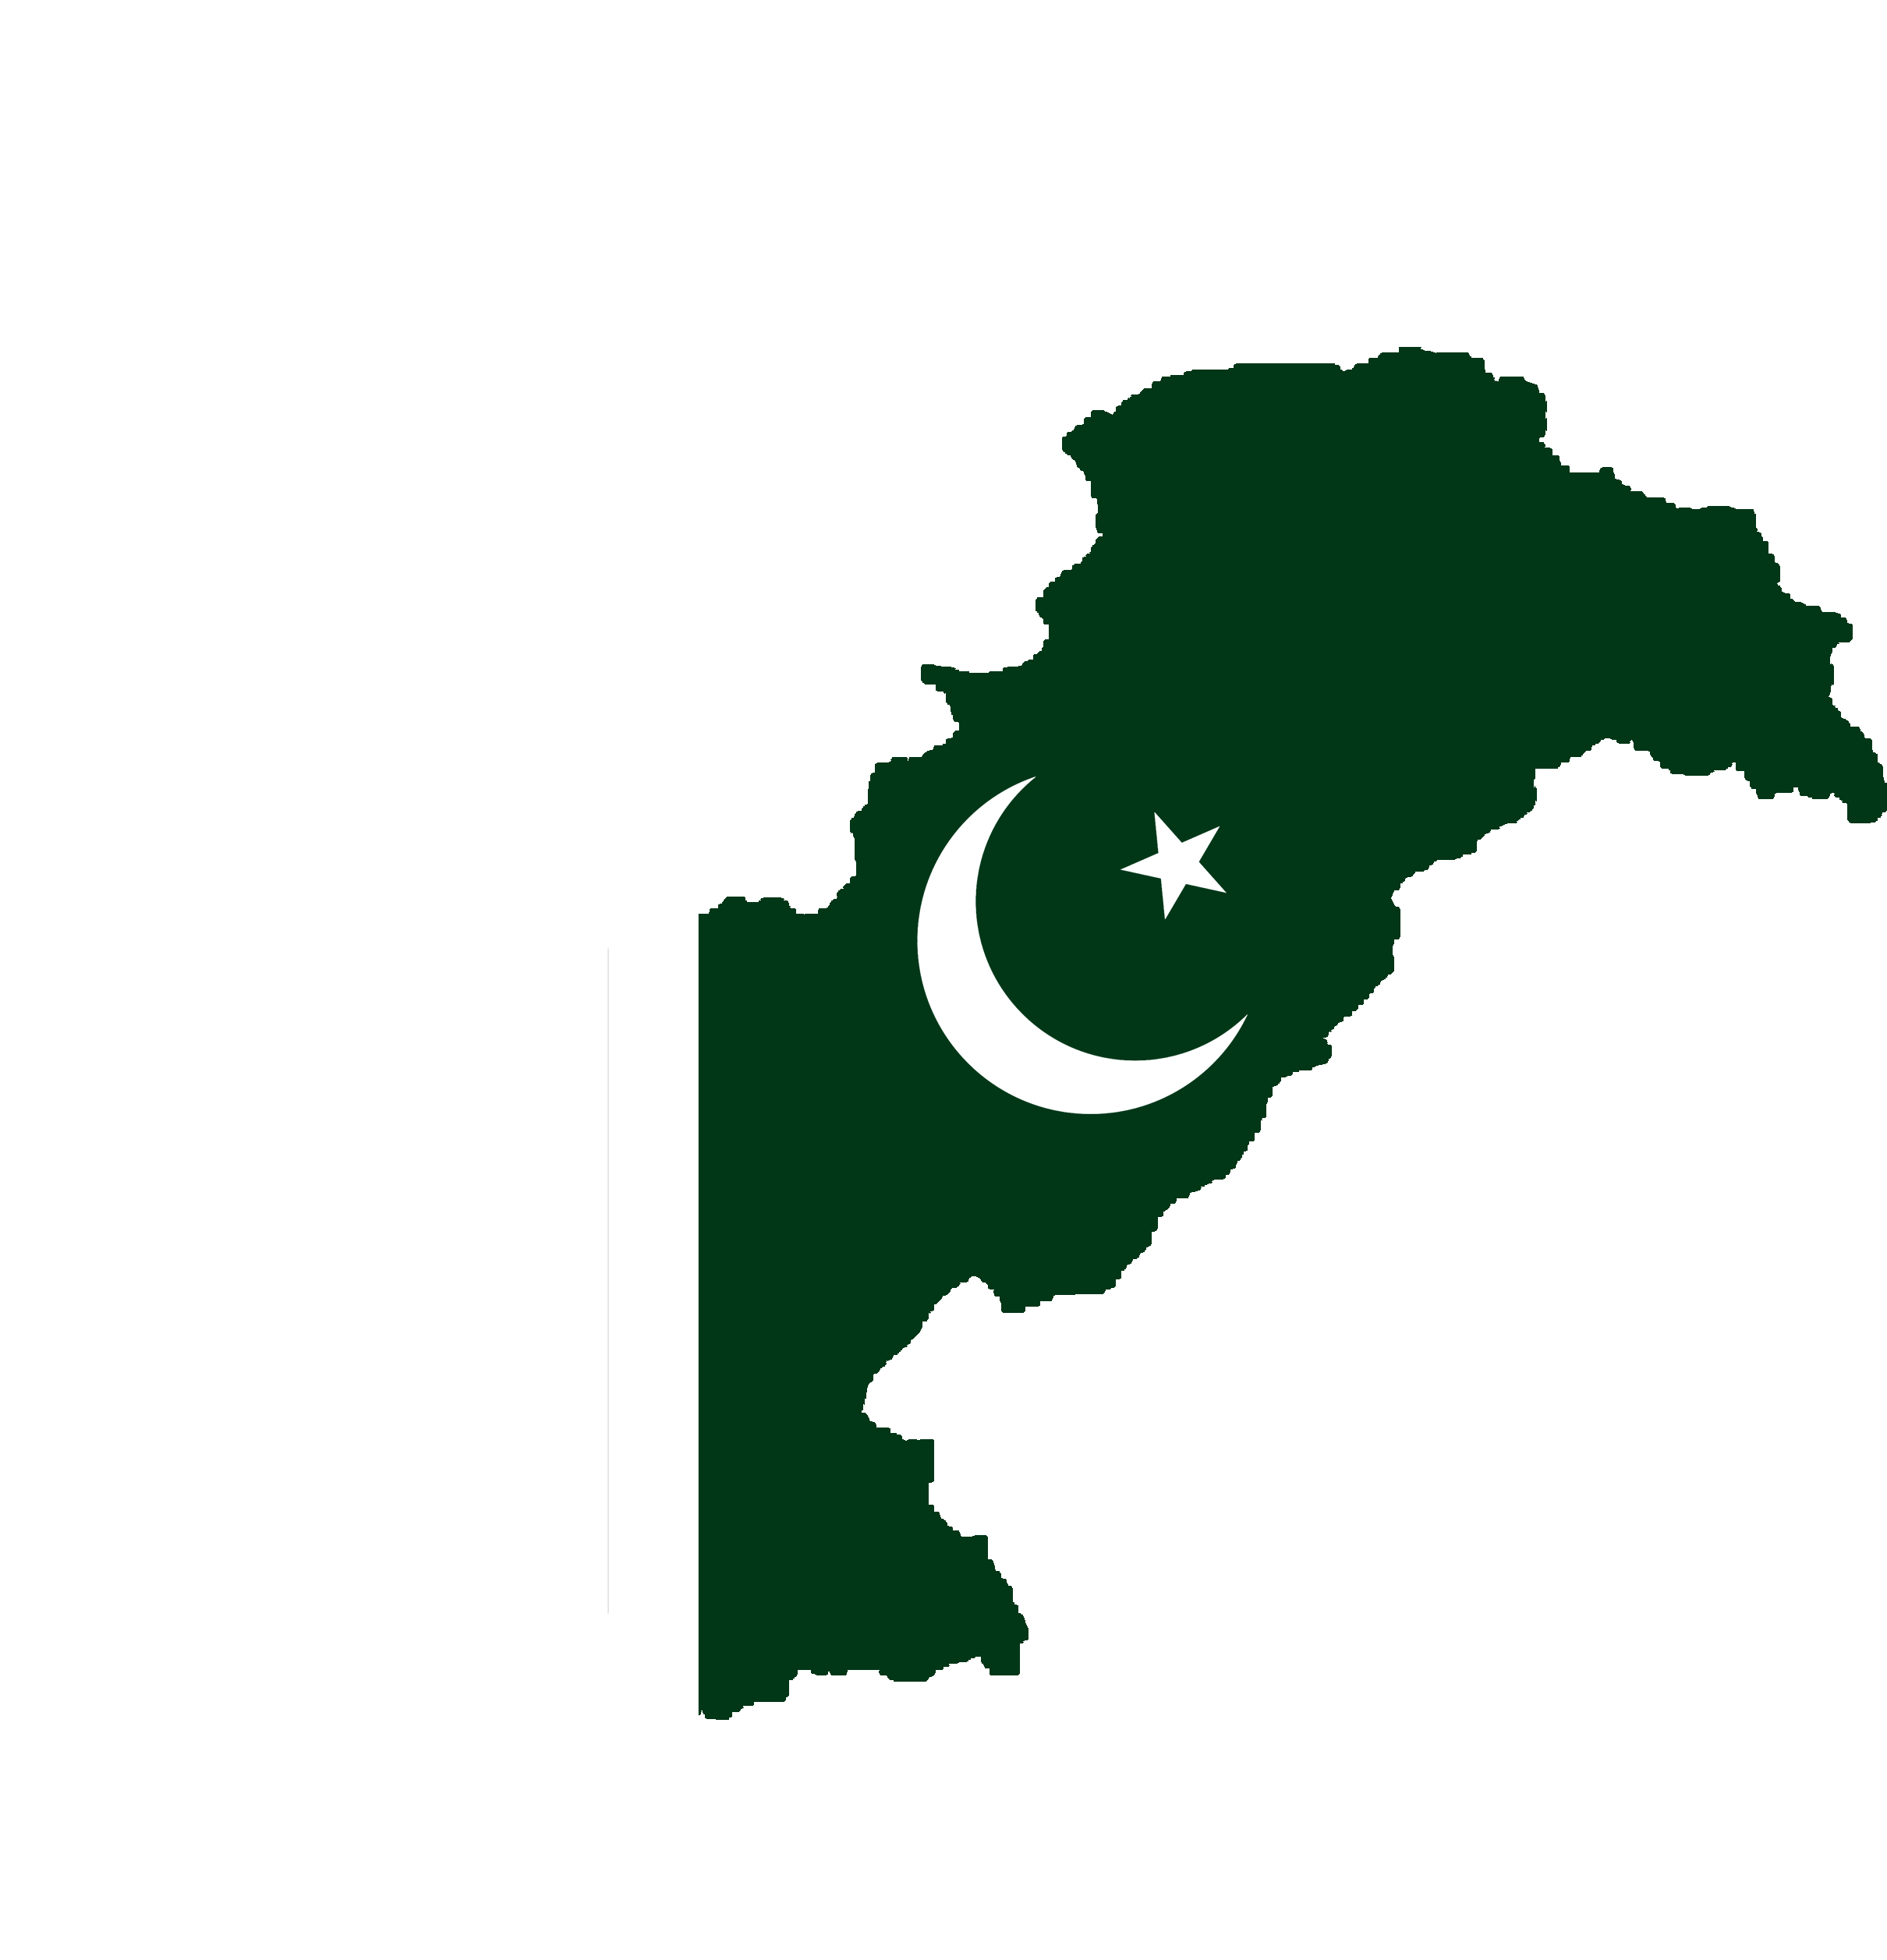 current political situation of pakistan overview essay Writing a essay on current political situation of pakistan perfect styling and master thesis in quality management formatting help to ensure the correct note.